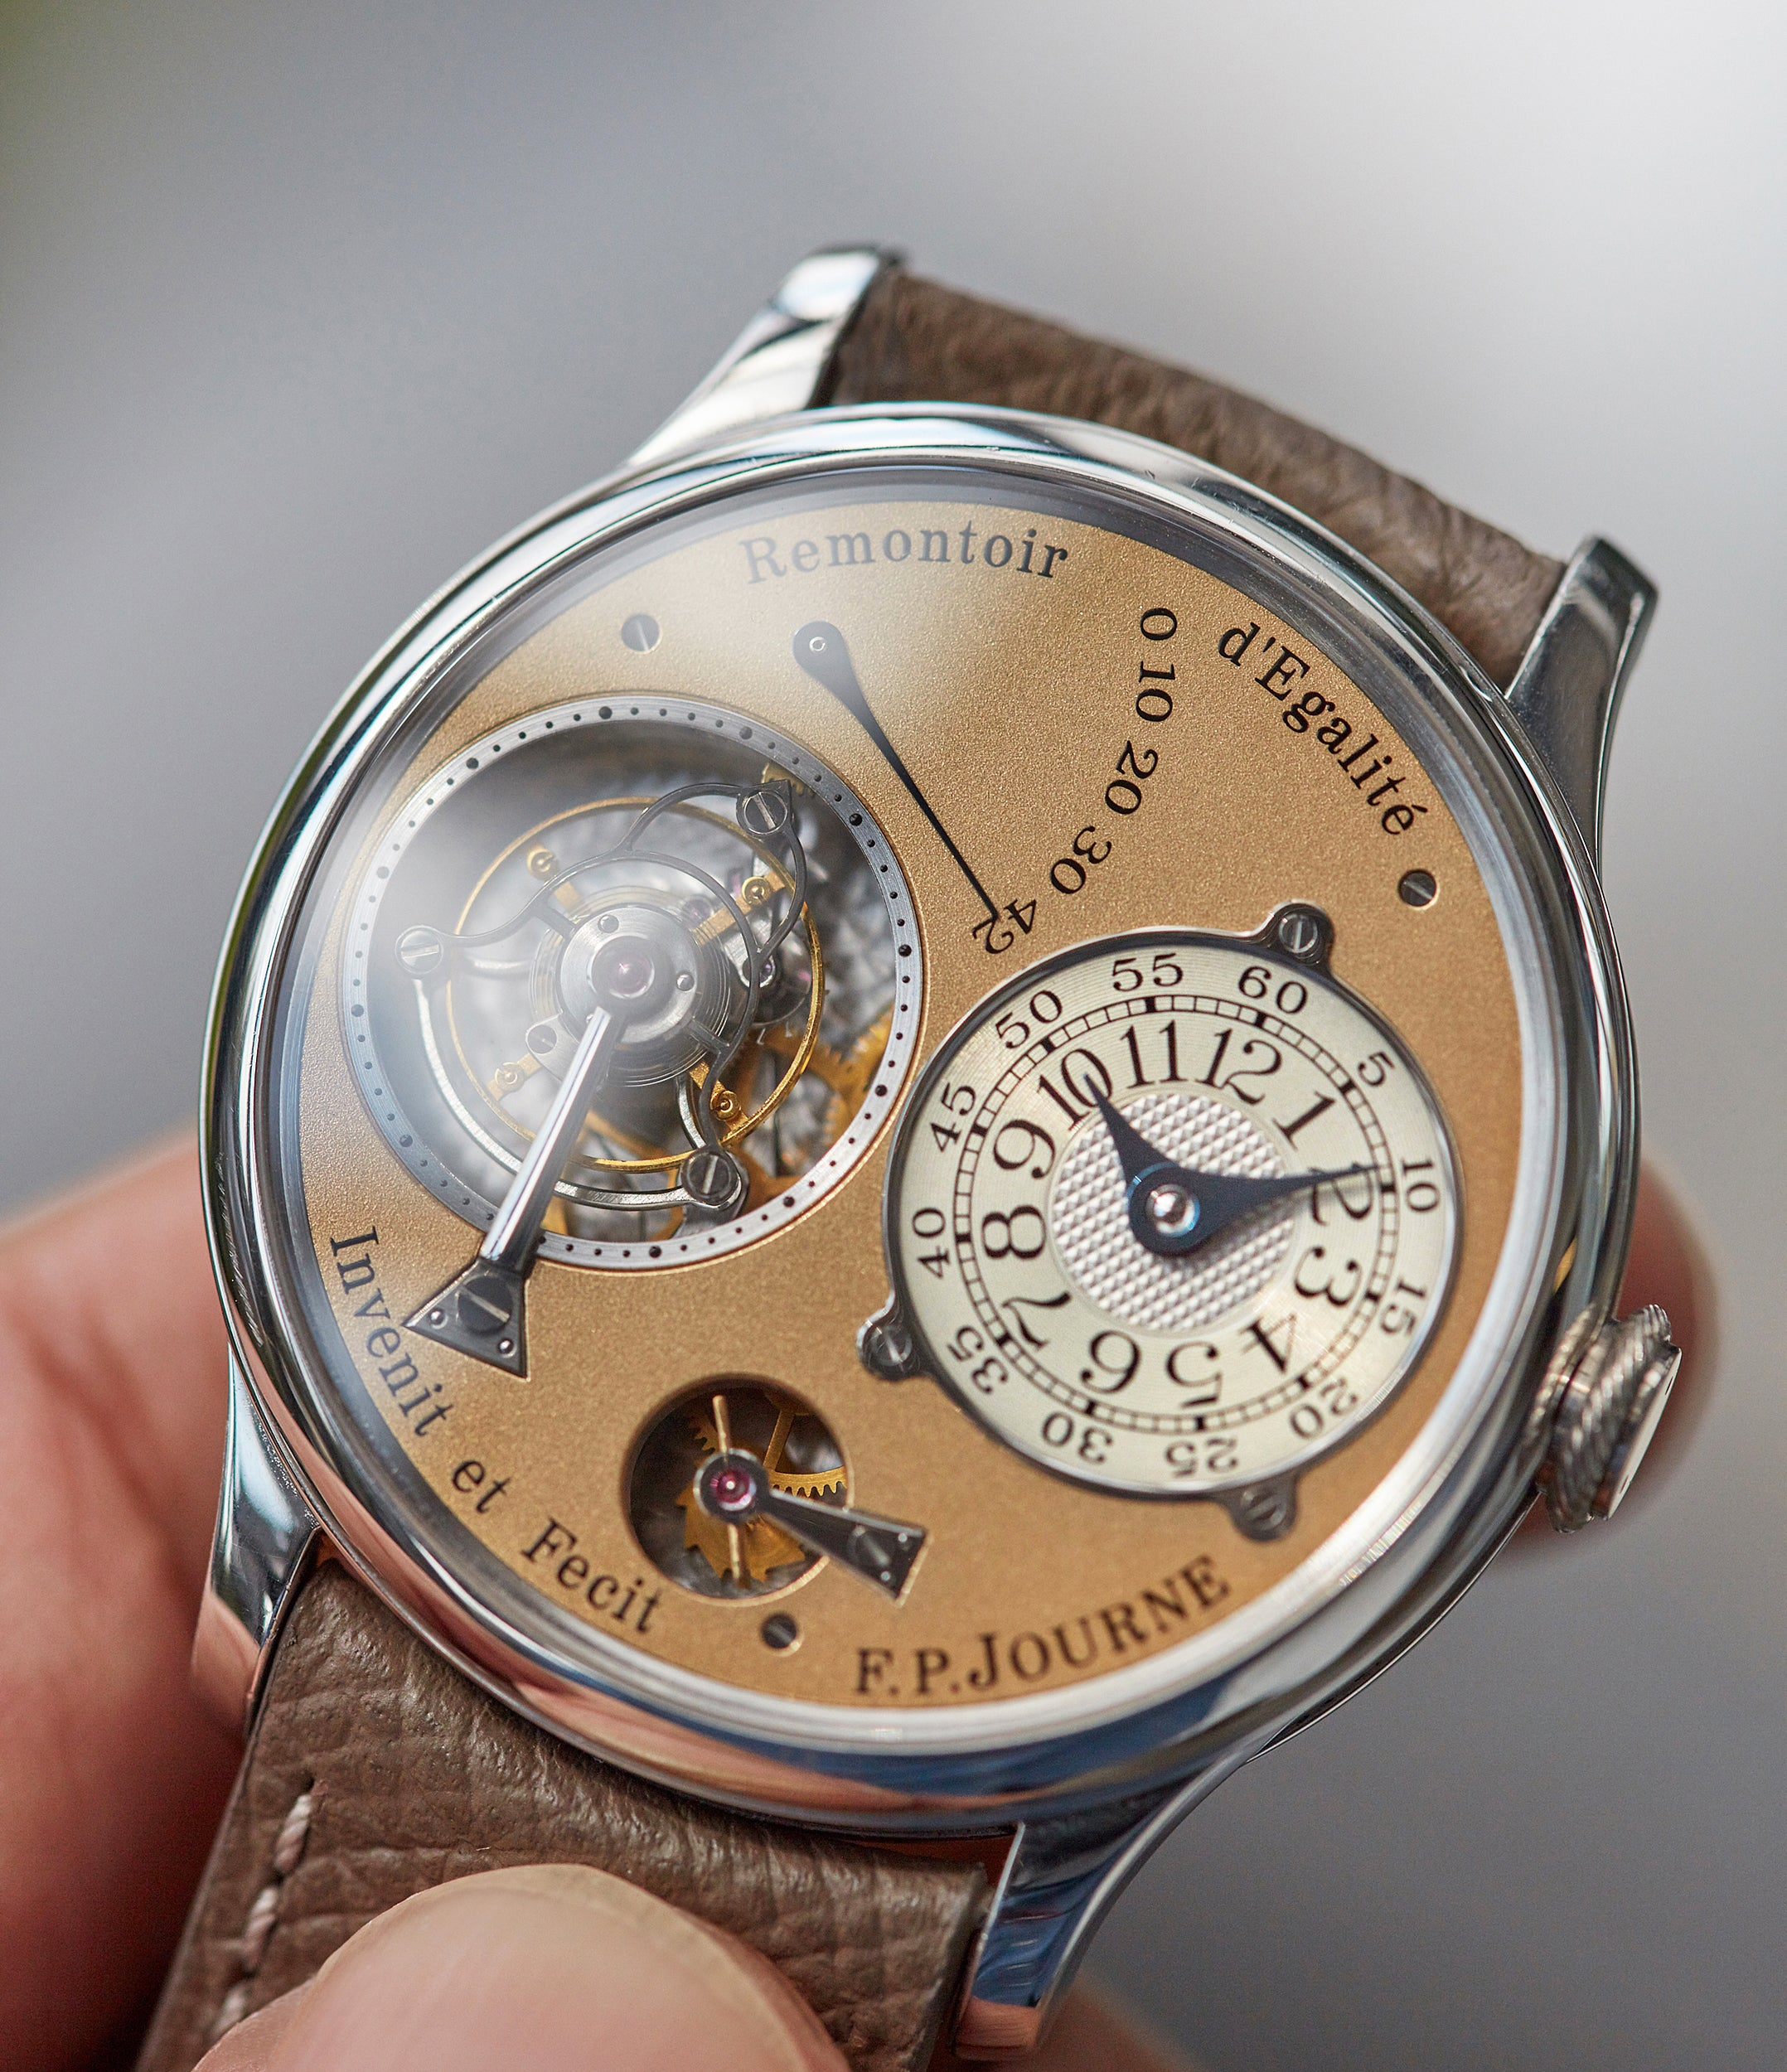 men's collectable wristwatch 01T Tourbillon F. P. Journe brass movement 38 mm platinum dress watch for sale online at A Collected Man London UK specialist of rare independent watches